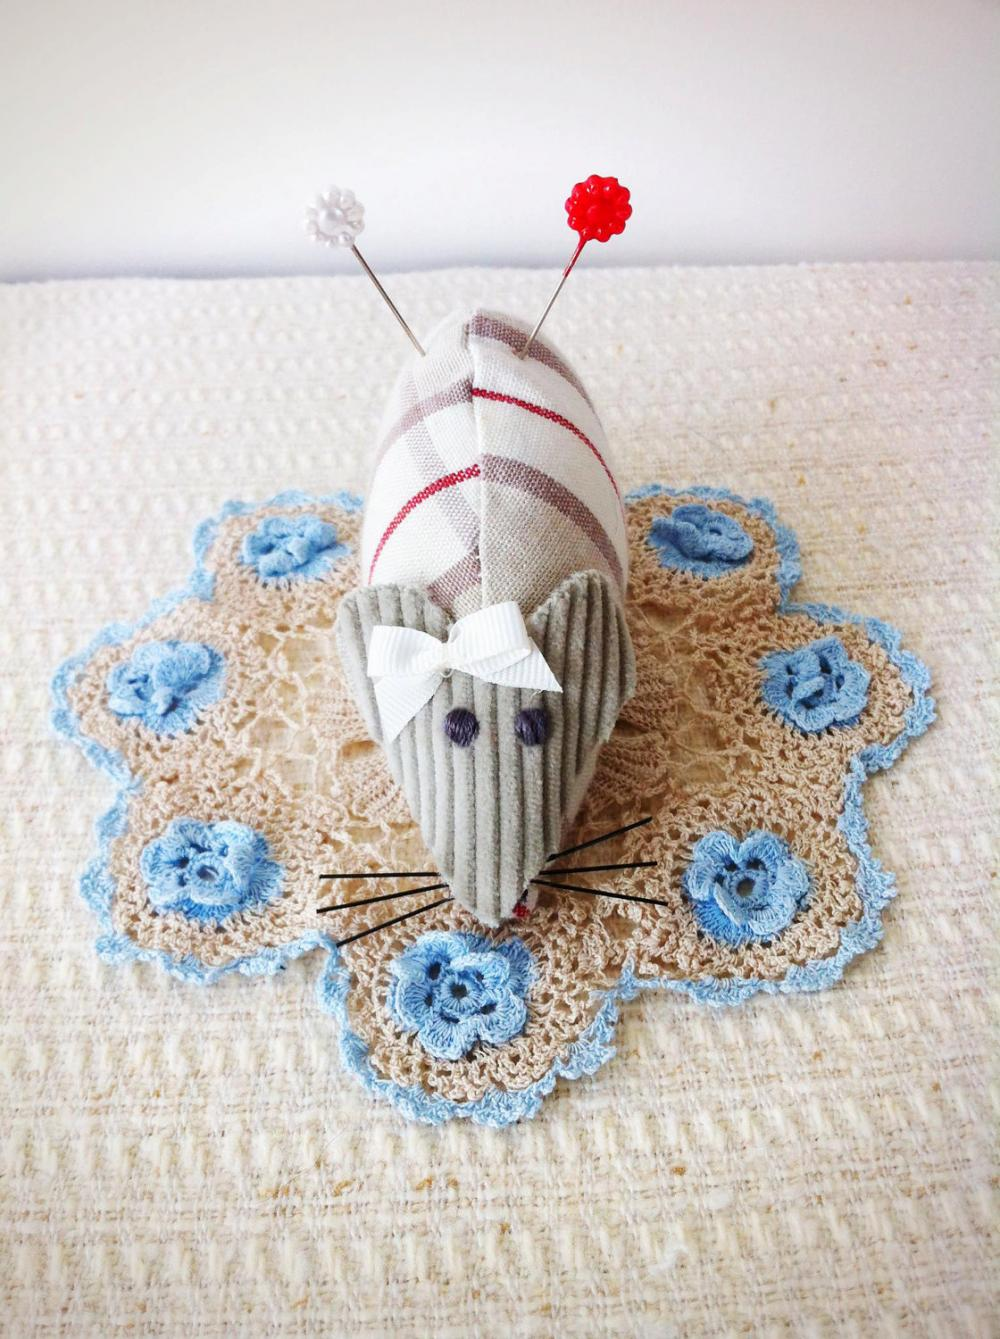 Hattie the mouse handmade pincushion, with cream and red tartan body, and cute little flower pins.